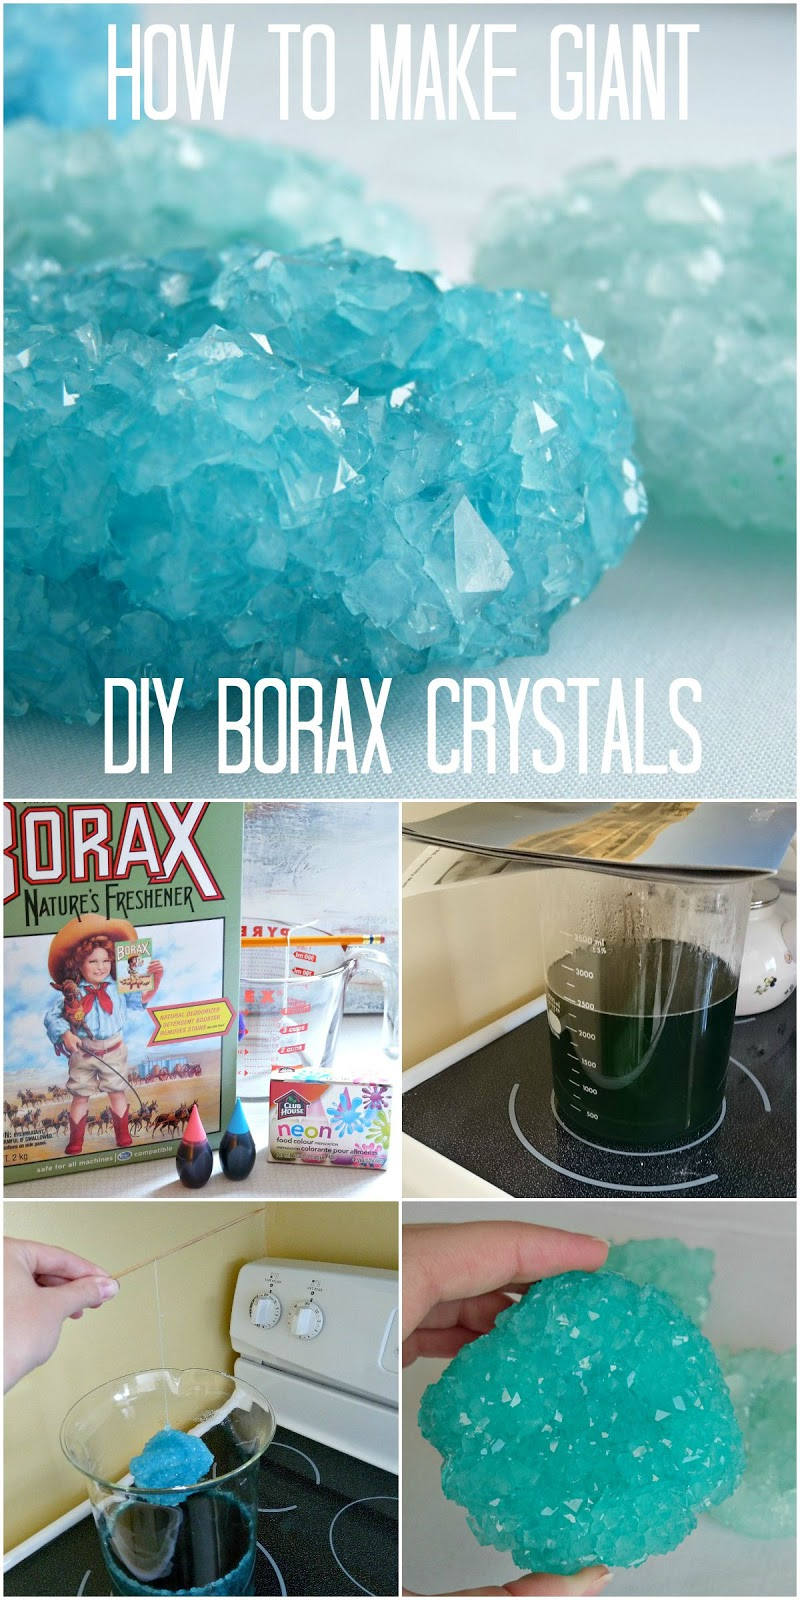 How to make giant borax crystals